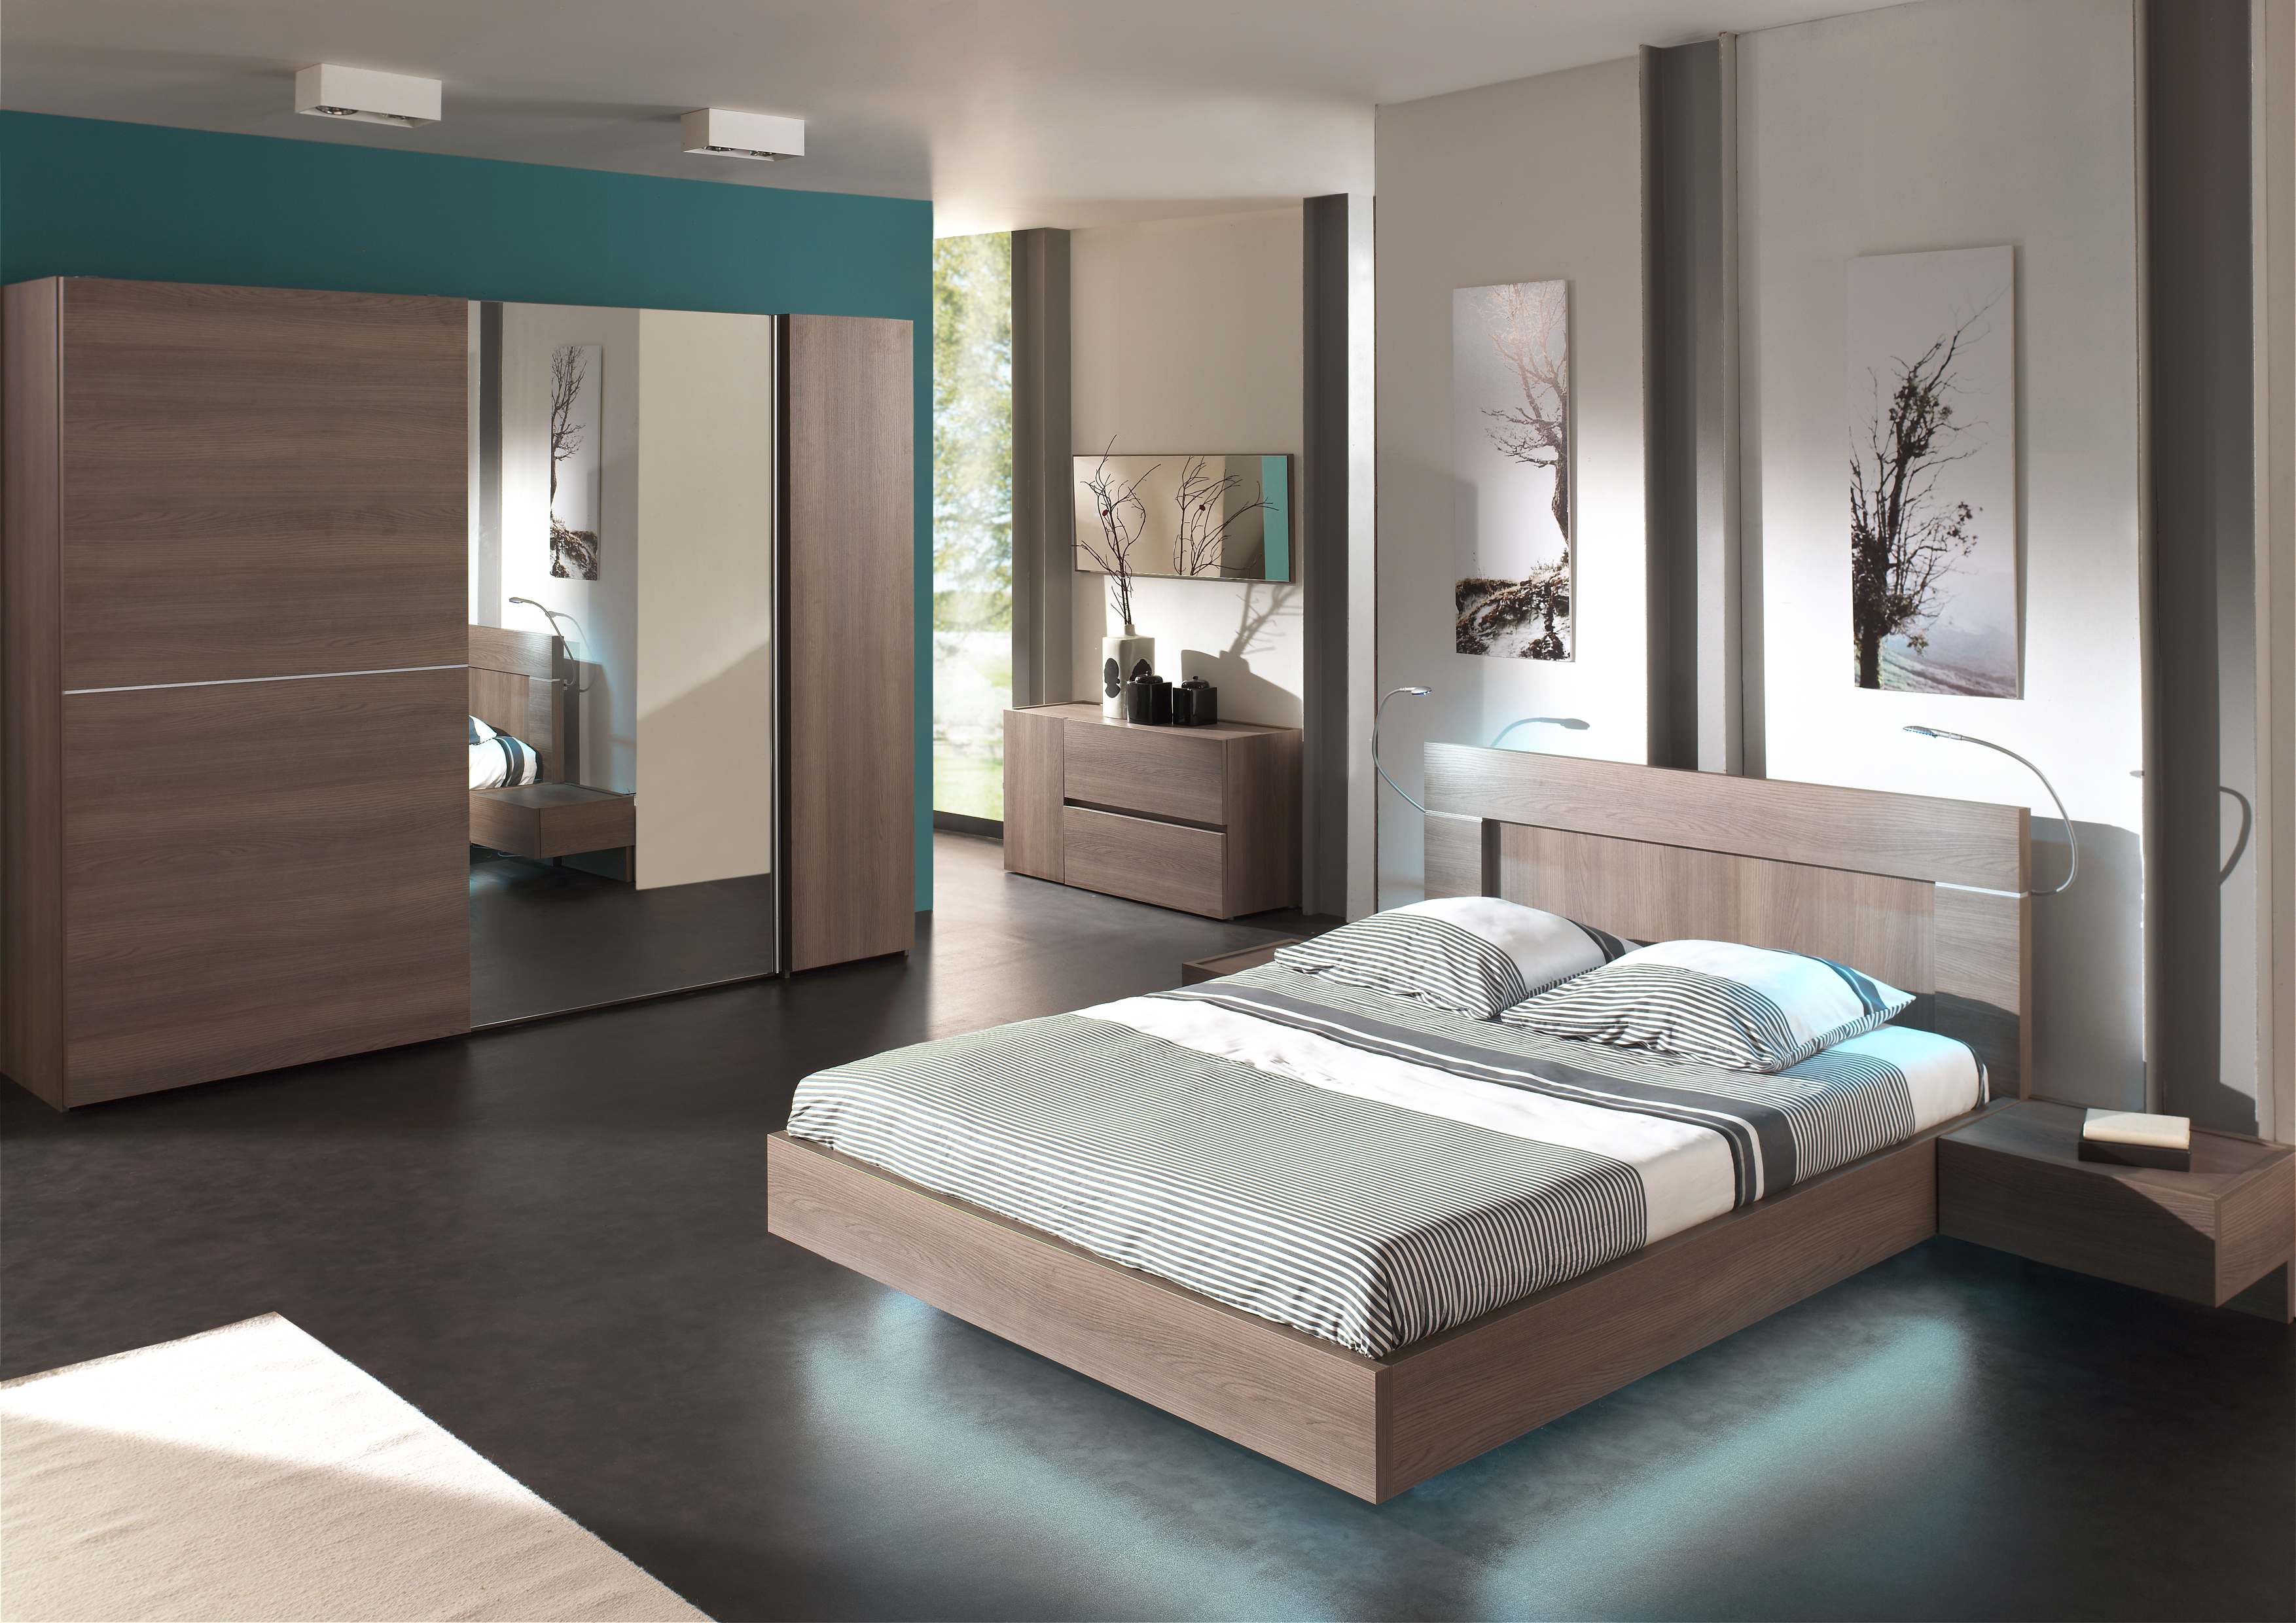 Chambre nia   mobilier confort